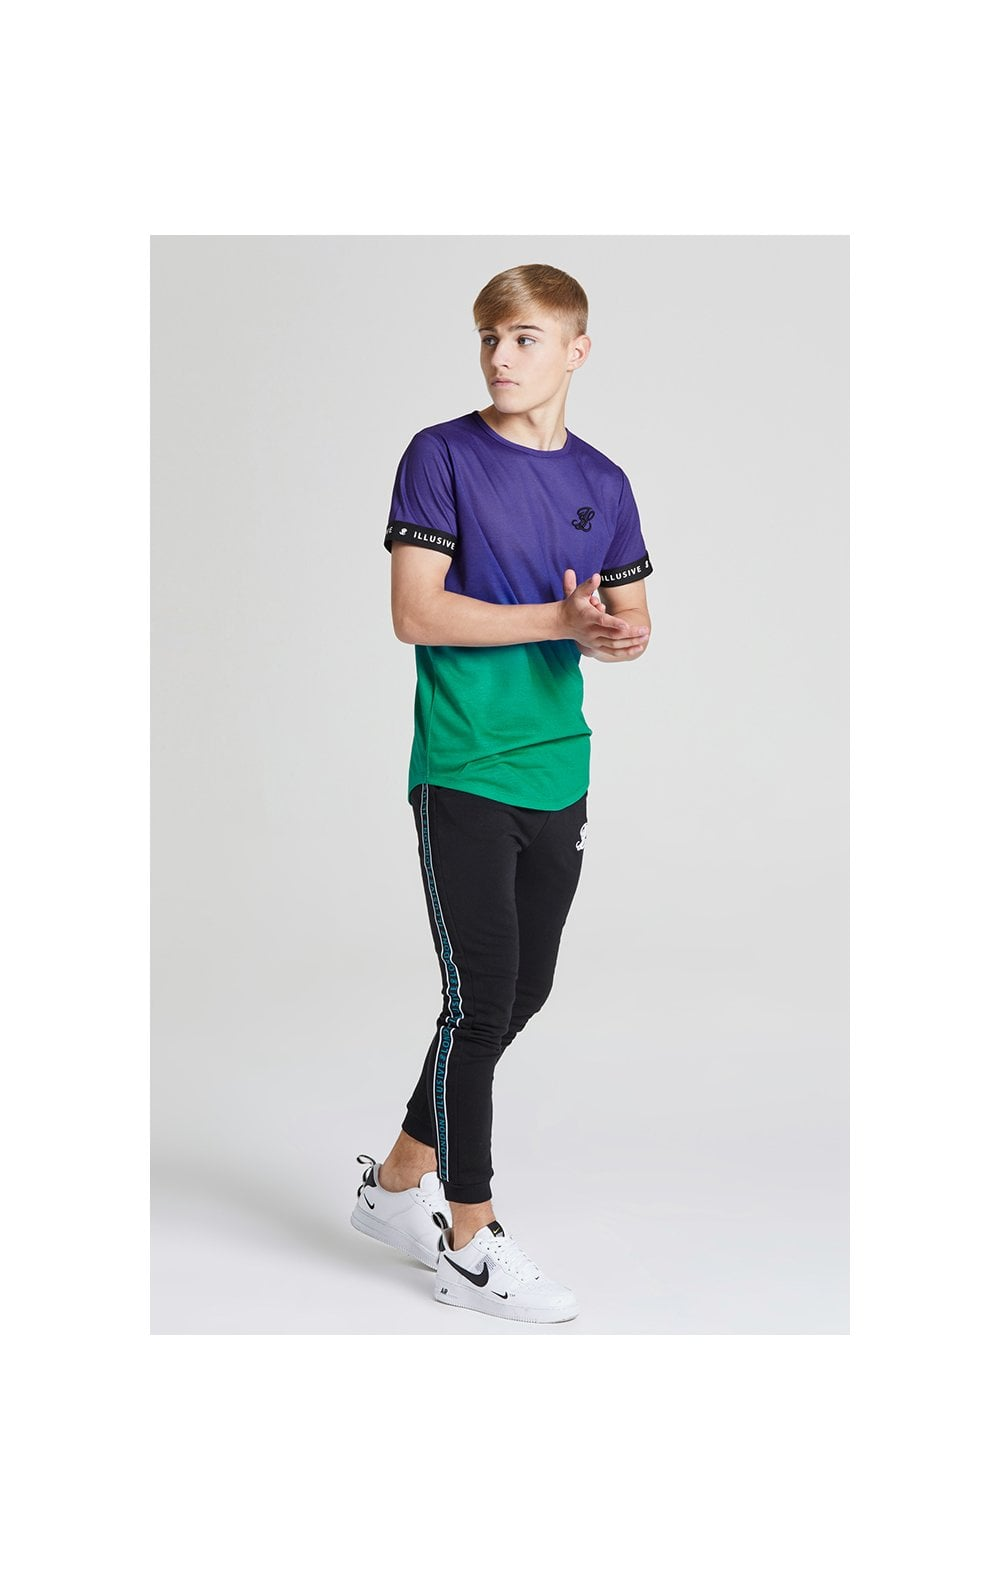 Load image into Gallery viewer, Illusive London Fade Tech Tee - Purple & Teal Green (4)